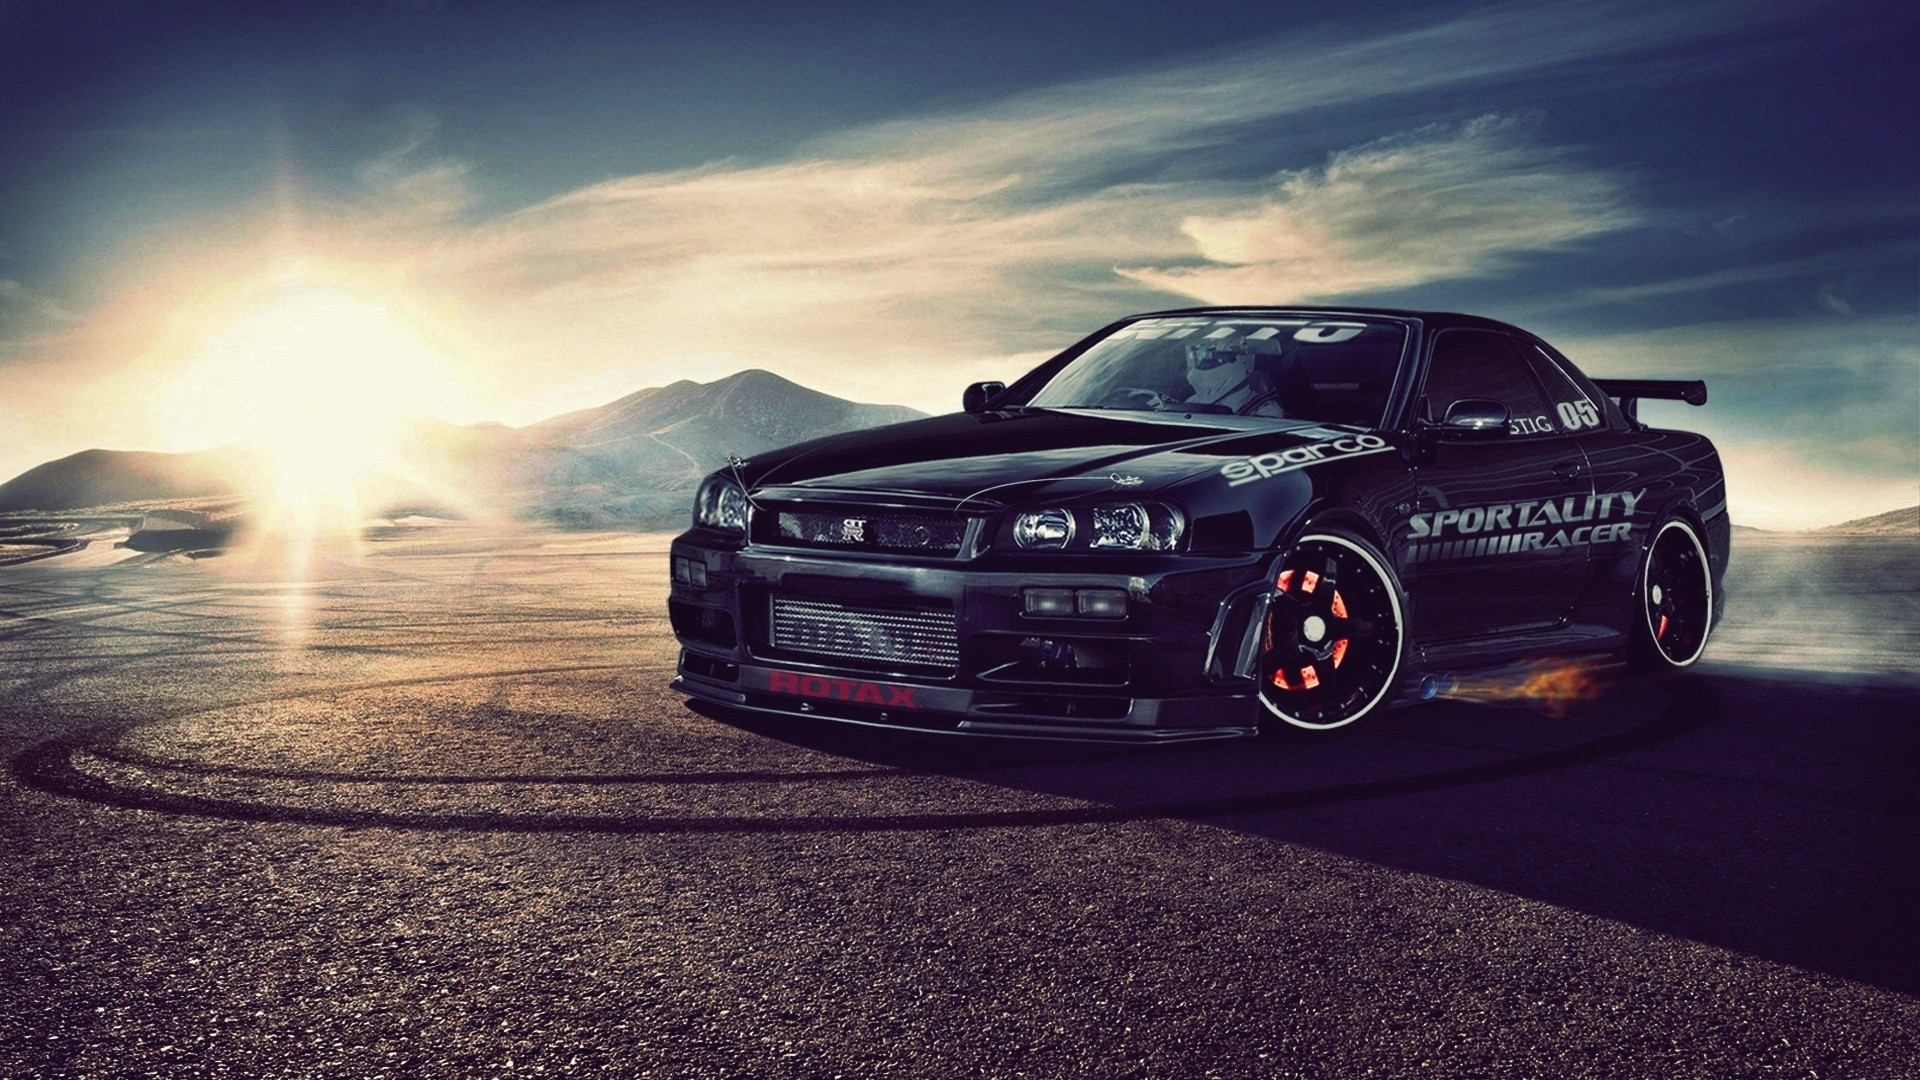 Free Download Nissan Skyline R34 Gt R Wallpaper 15526